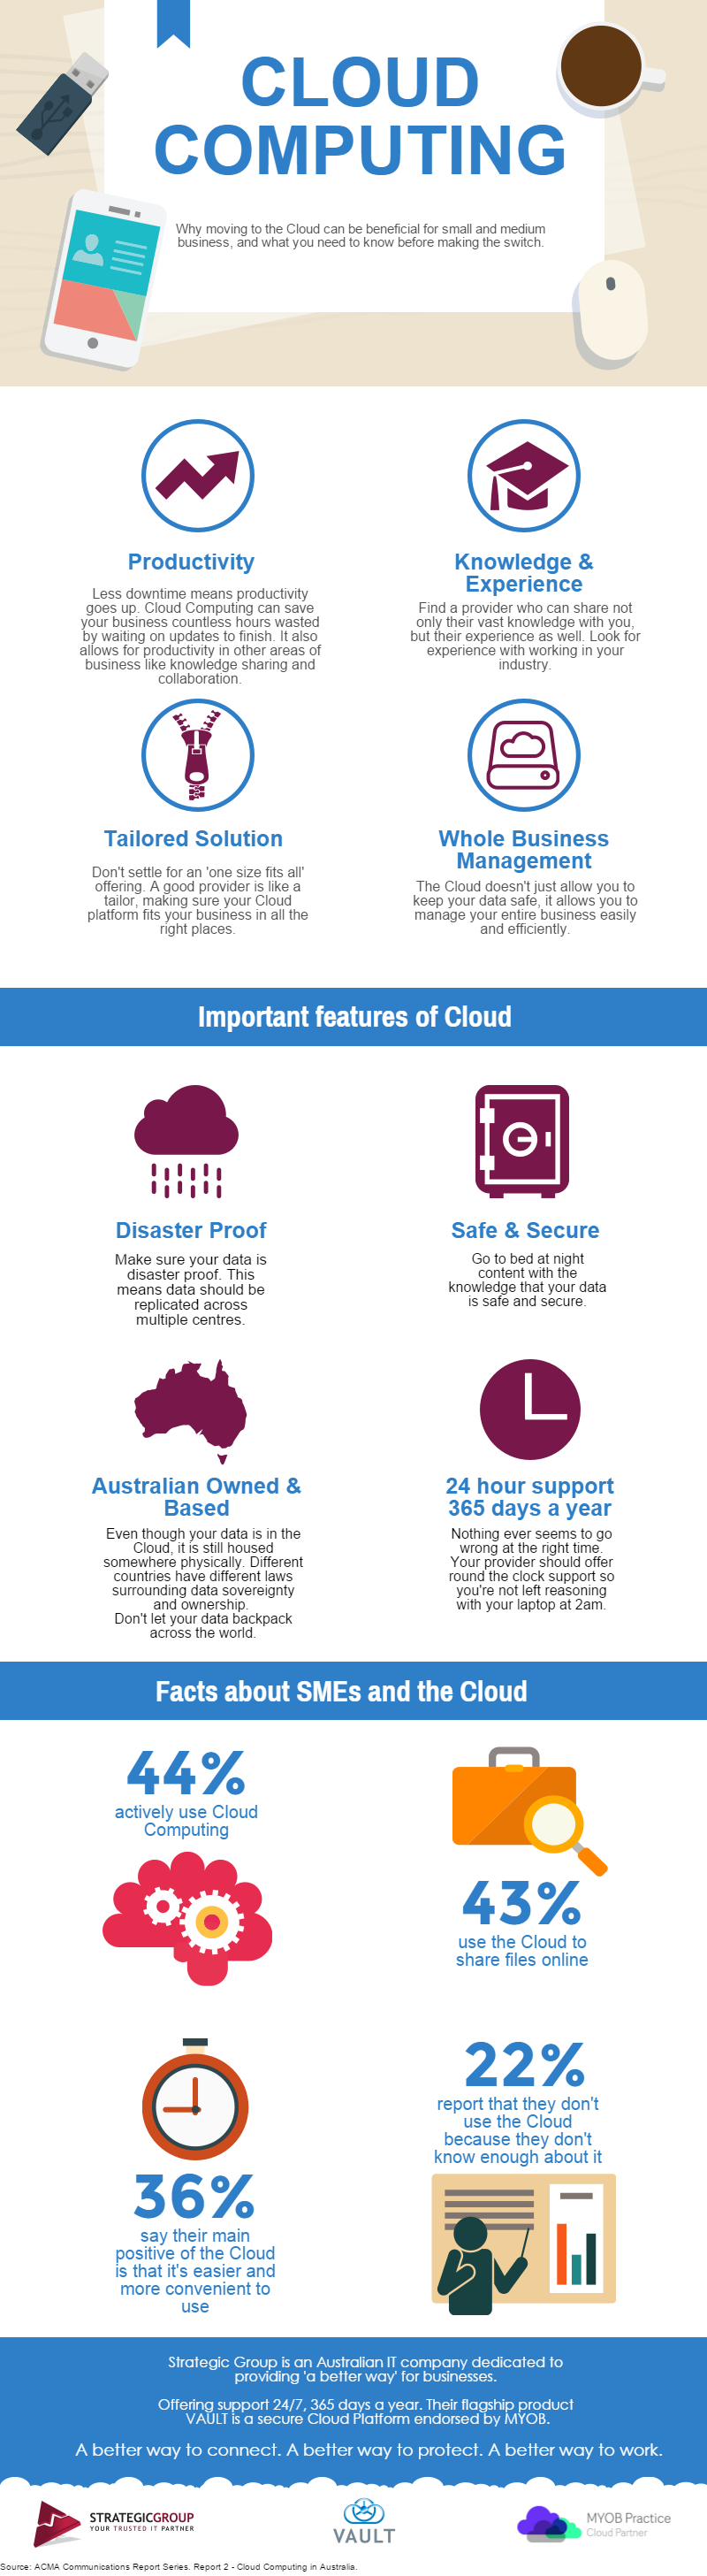 Cloud Computing Facts and Features